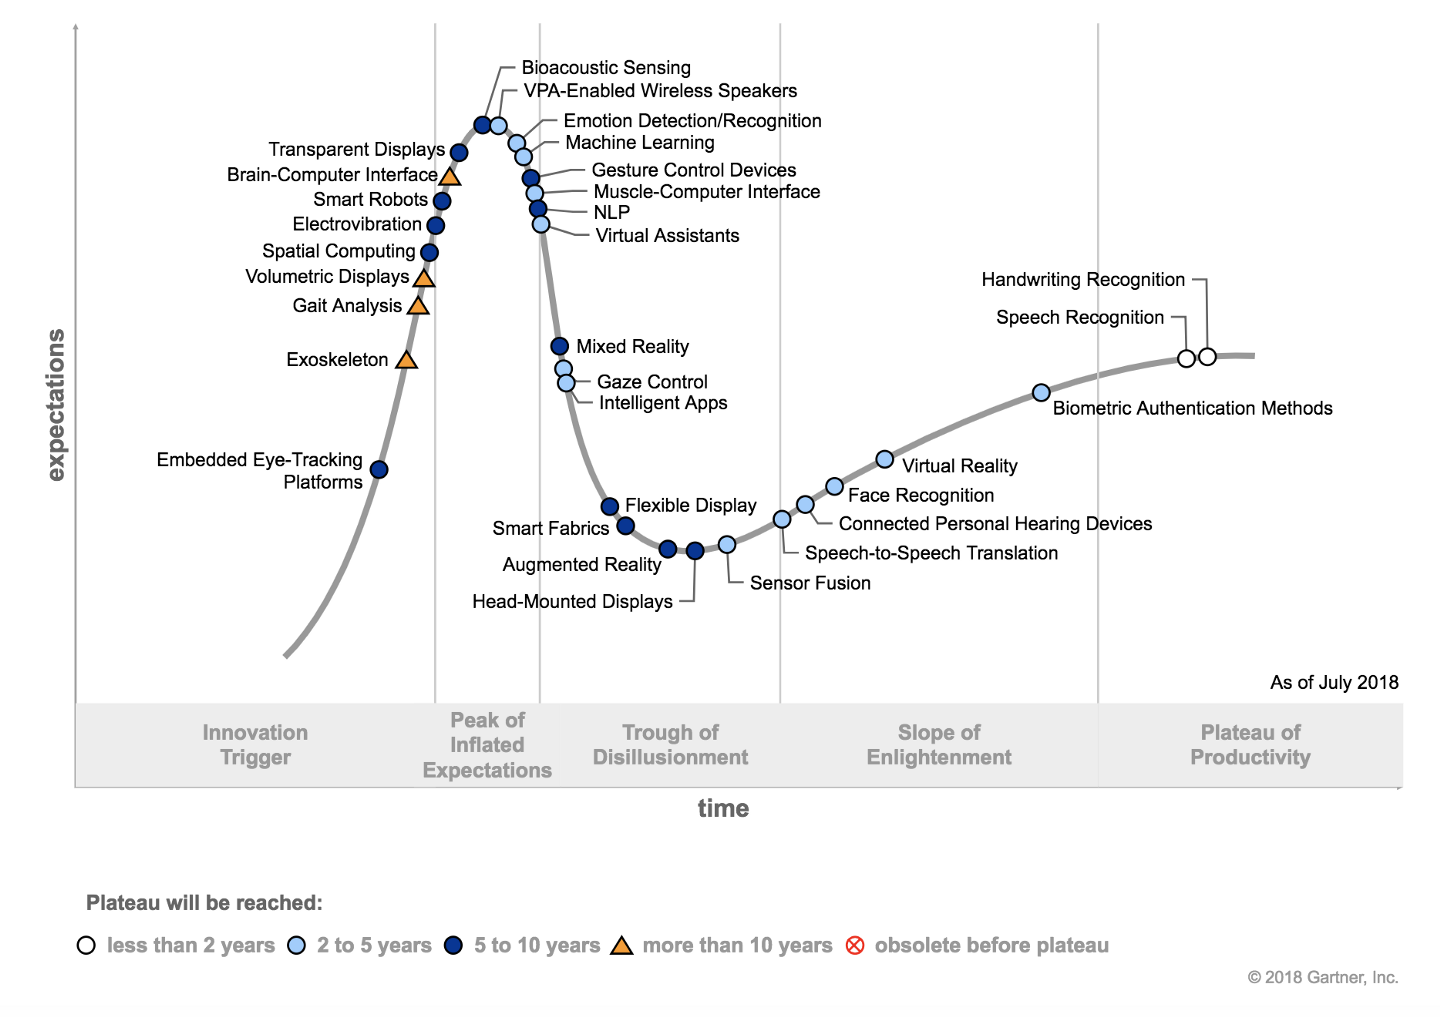 Human-Machine Interface-Trough-of-Disillusionment